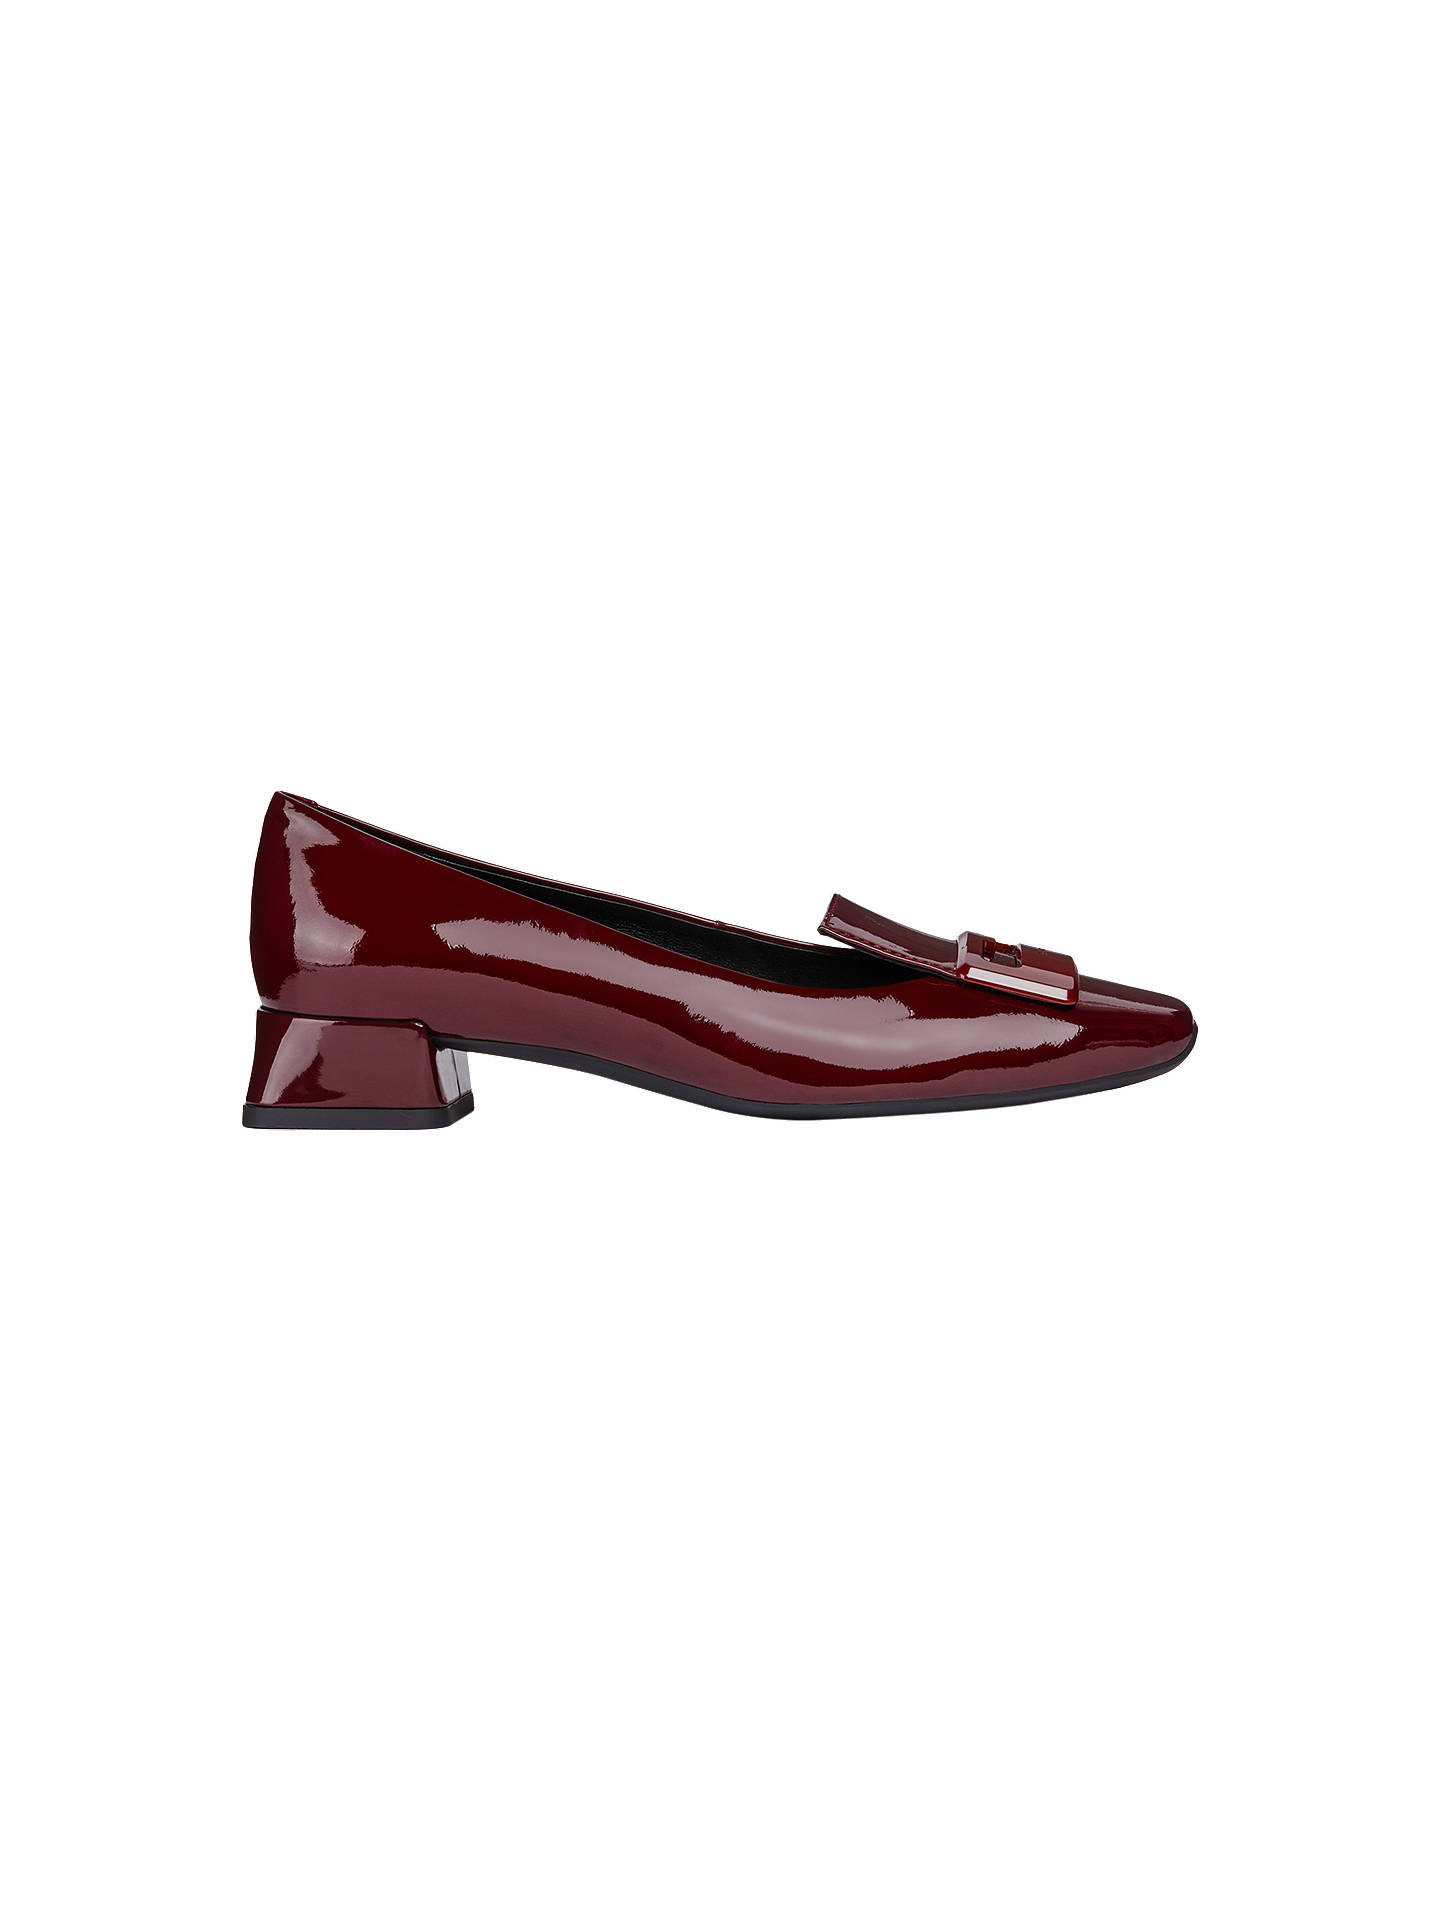 dd8a4026b94 Buy Geox Women's Vivyanne Ballet Pumps, Red Patent Leather, 3 Online at  johnlewis.